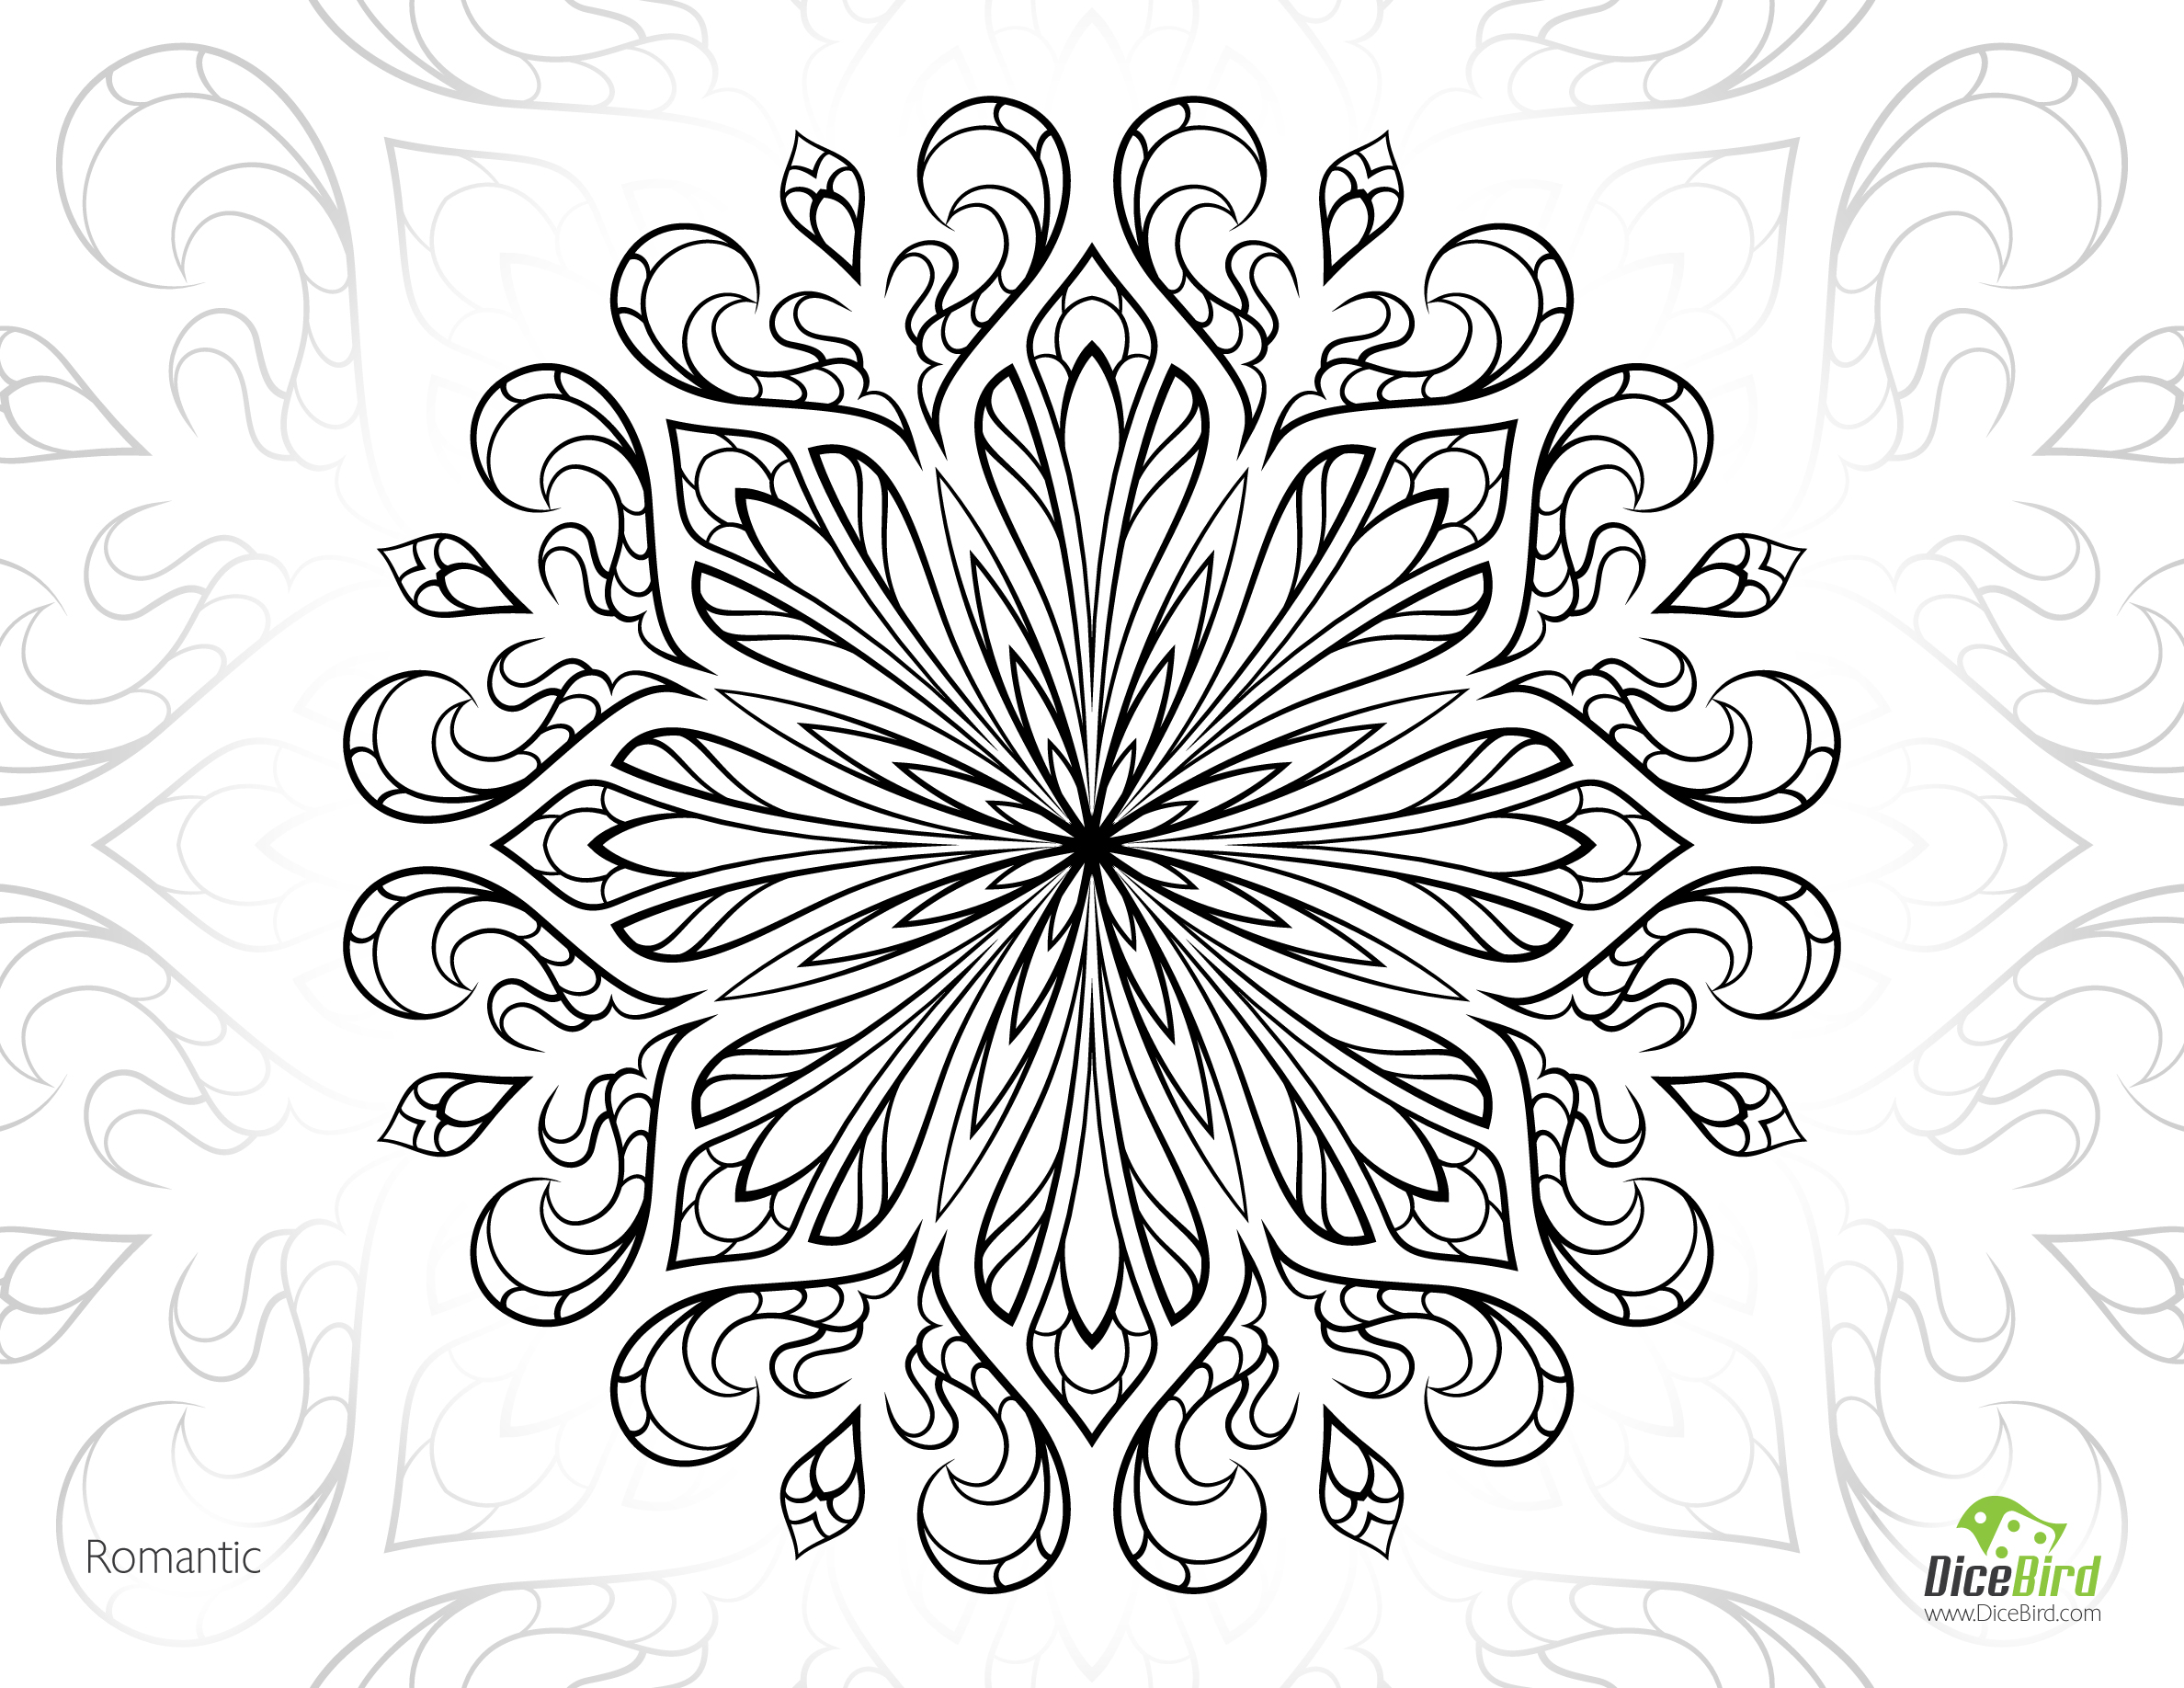 2376x1836 Free Printable Coloring Pages For Adults Advanced Romantic Flower